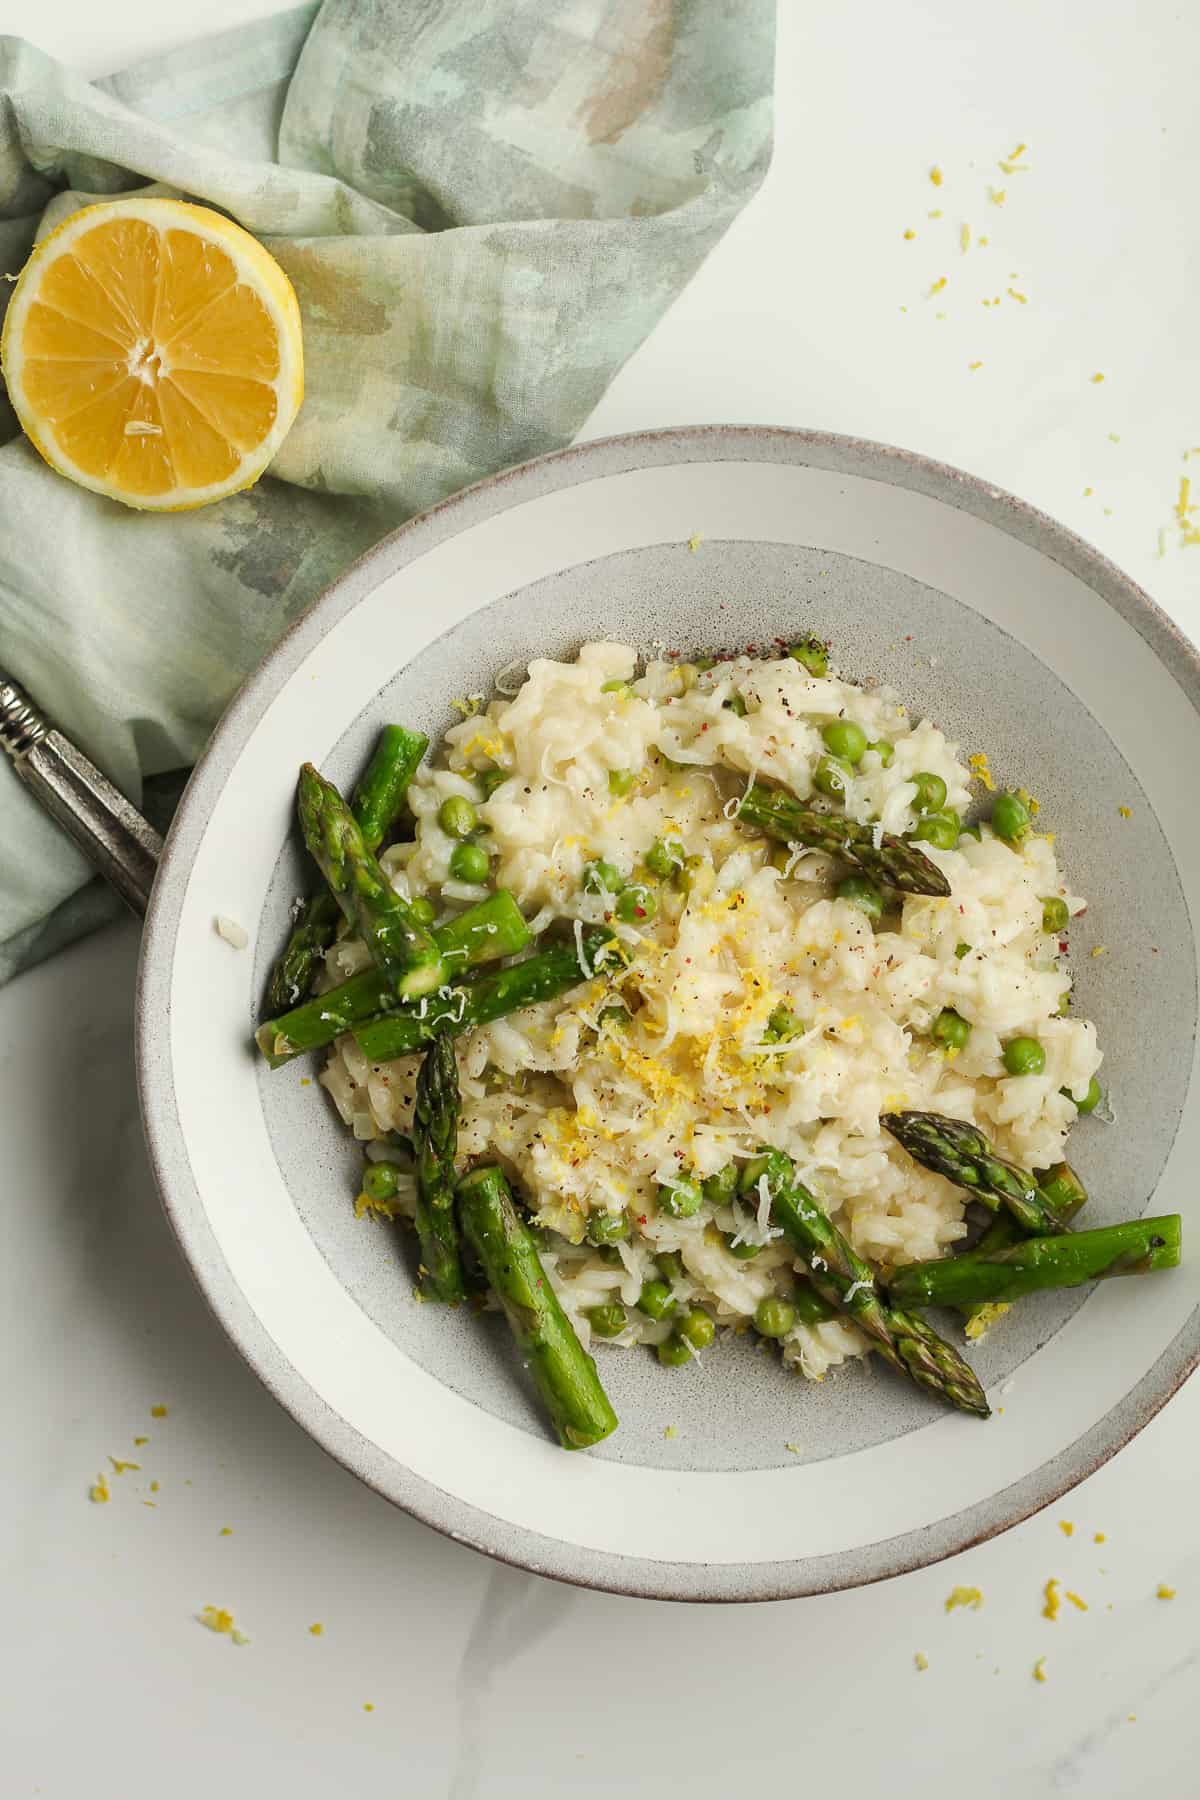 A bowl of lemon risotto with asparagus and peas.